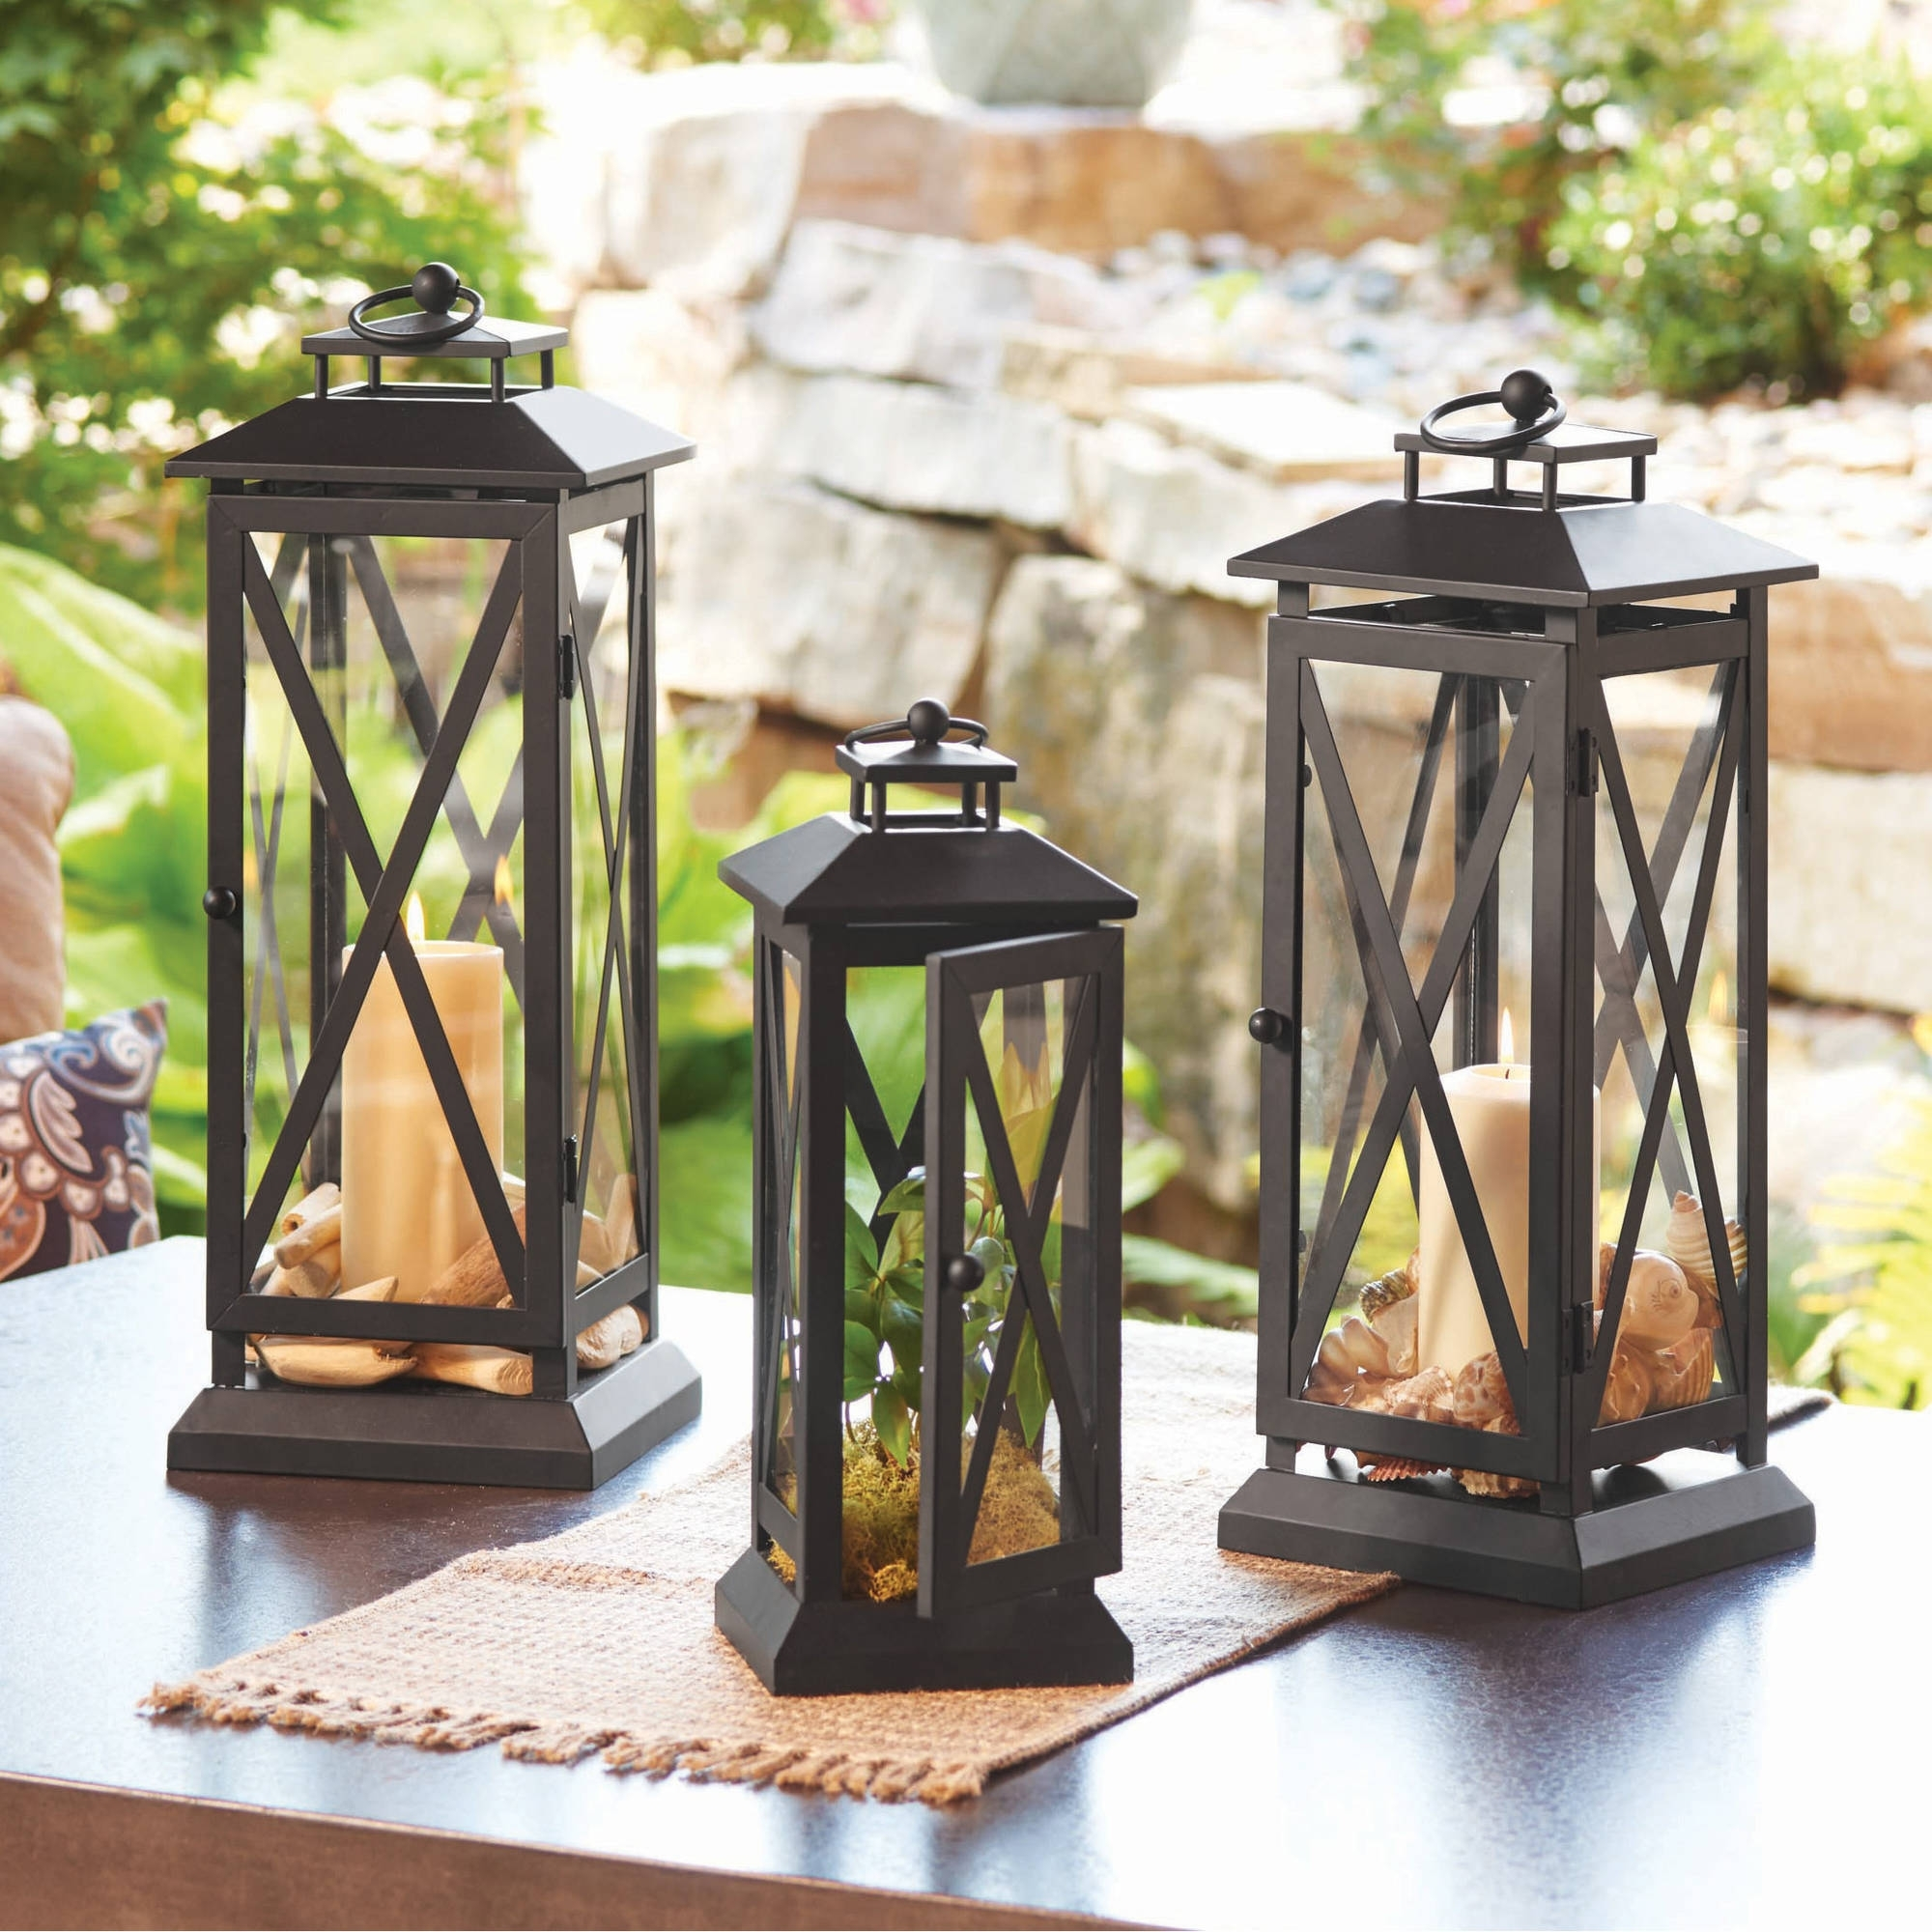 Better Homes And Gardens Crossbar Metal Outdoor Lantern – Walmart With Regard To Preferred Outdoor Patio Electric Lanterns (View 3 of 20)